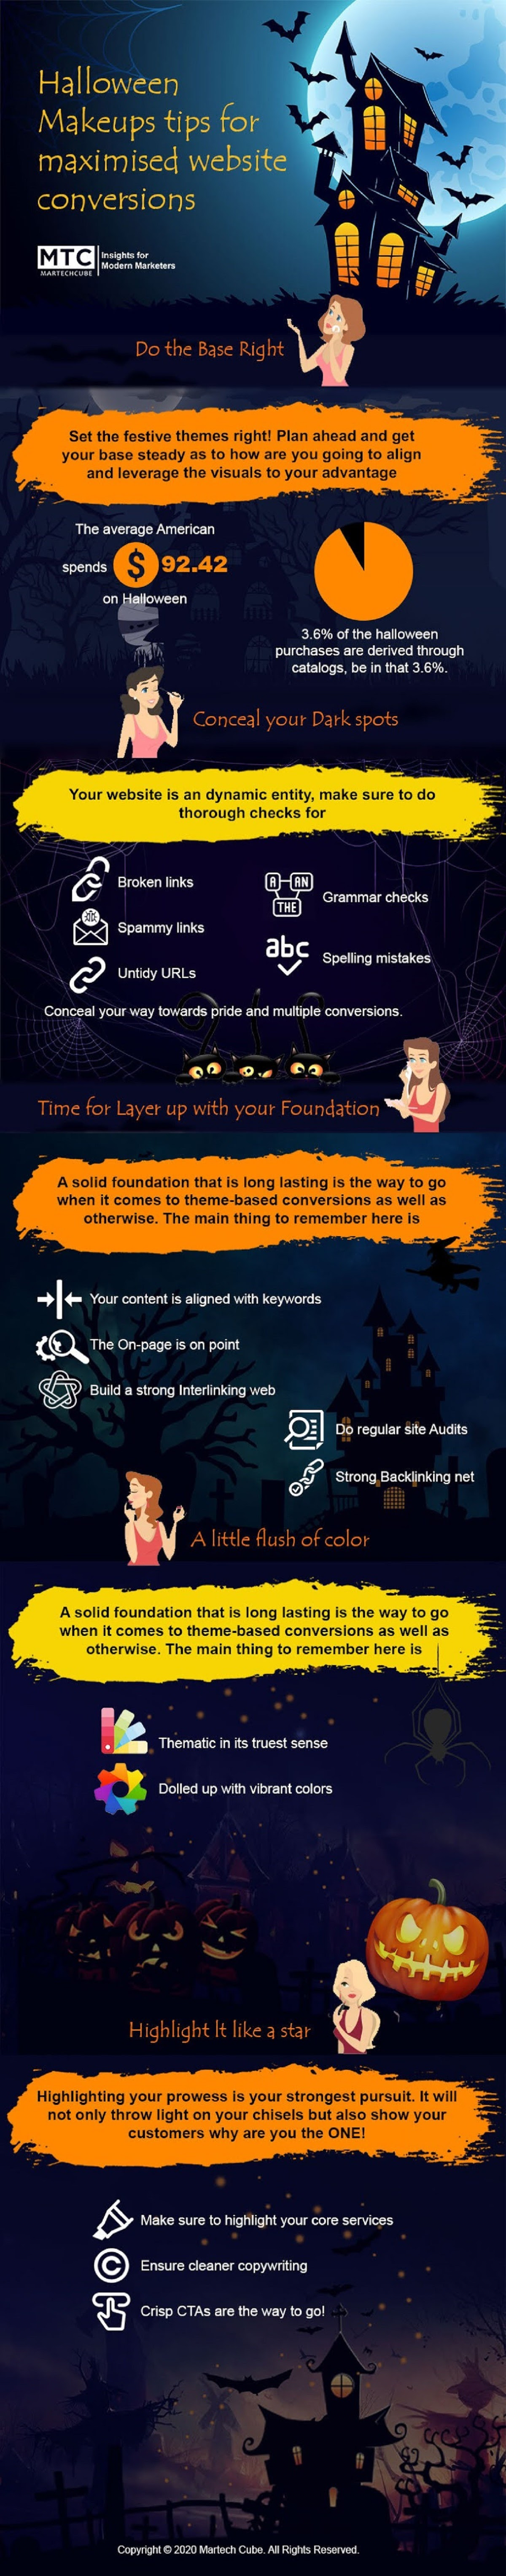 halloween-makeup-tips-for-maximized-website-conversions-infographic